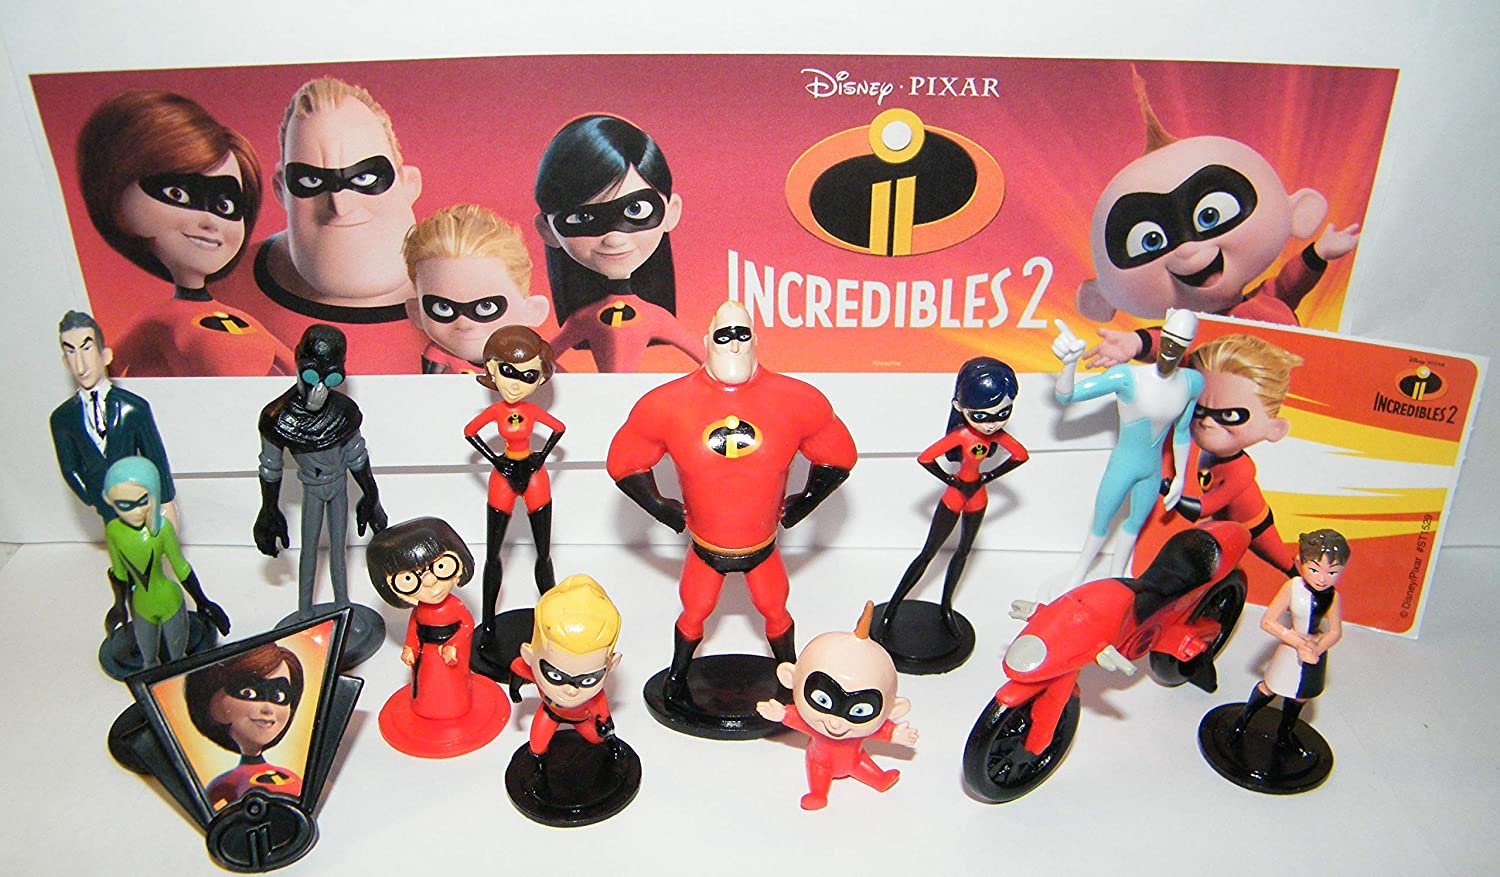 Amazon Com Playful Toys Incredibles 2 Movie Figure Set Of 15 Toy Kit With 12 Original And All New Characters Like Voyd Screenslaver The Elasti Cycle 2 Stickers And Specialring Toys Games